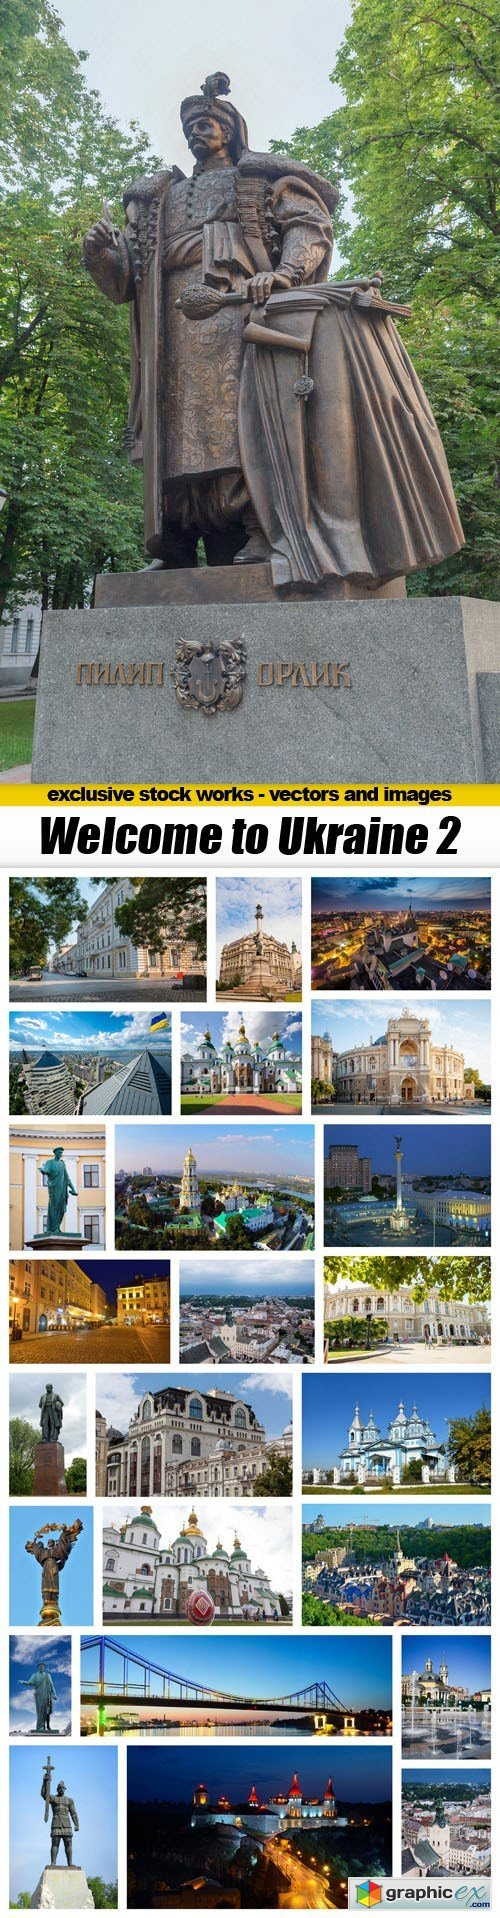 Welcome to Ukraine 2 - 25xUHQ JPEG